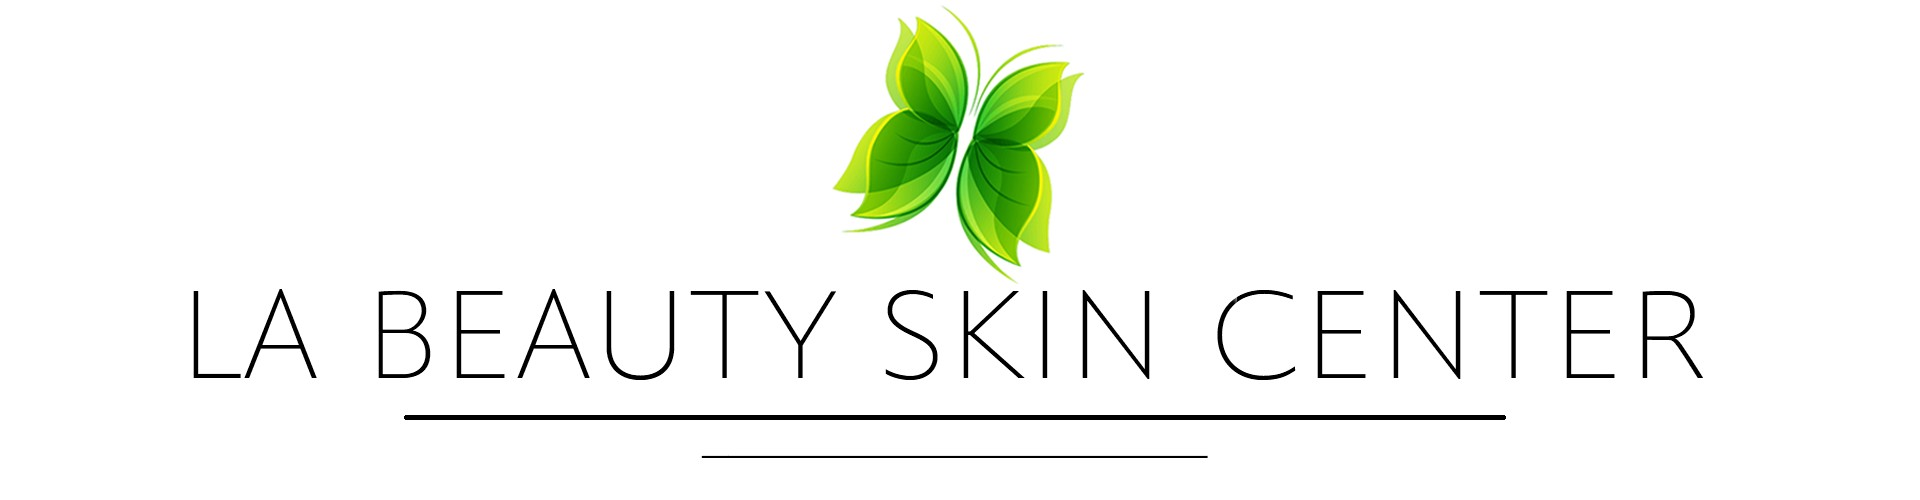 LA Beauty Skin Center